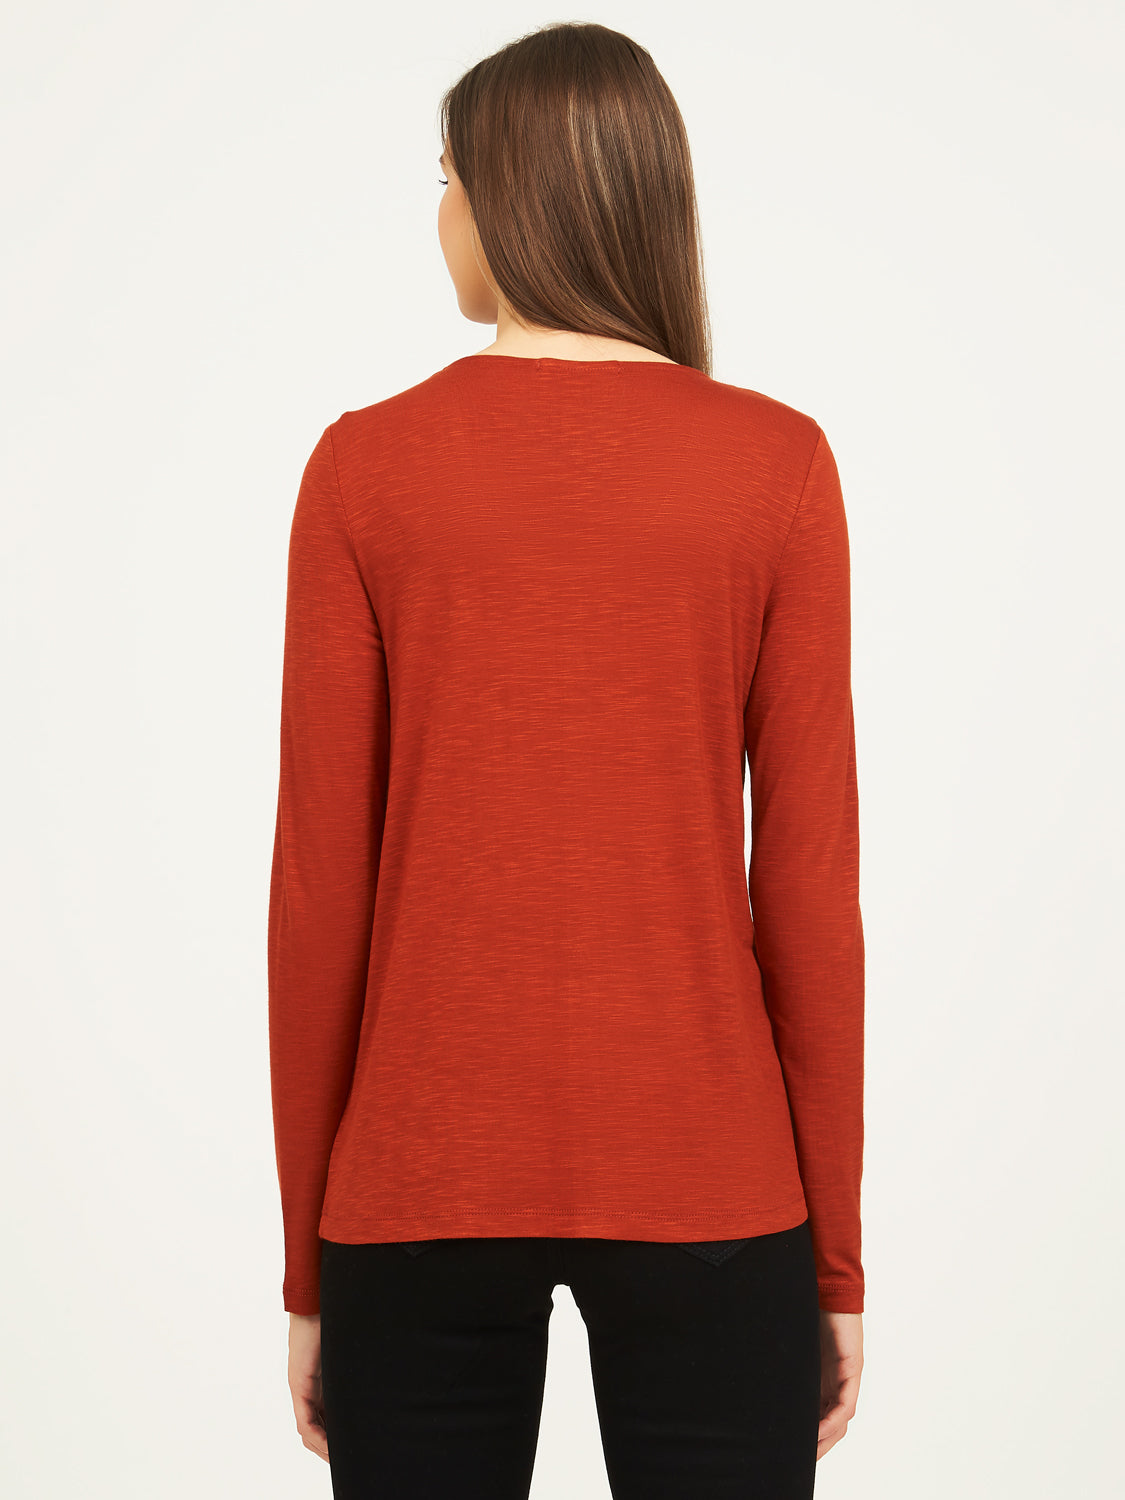 Long Sleeve Jersey Top